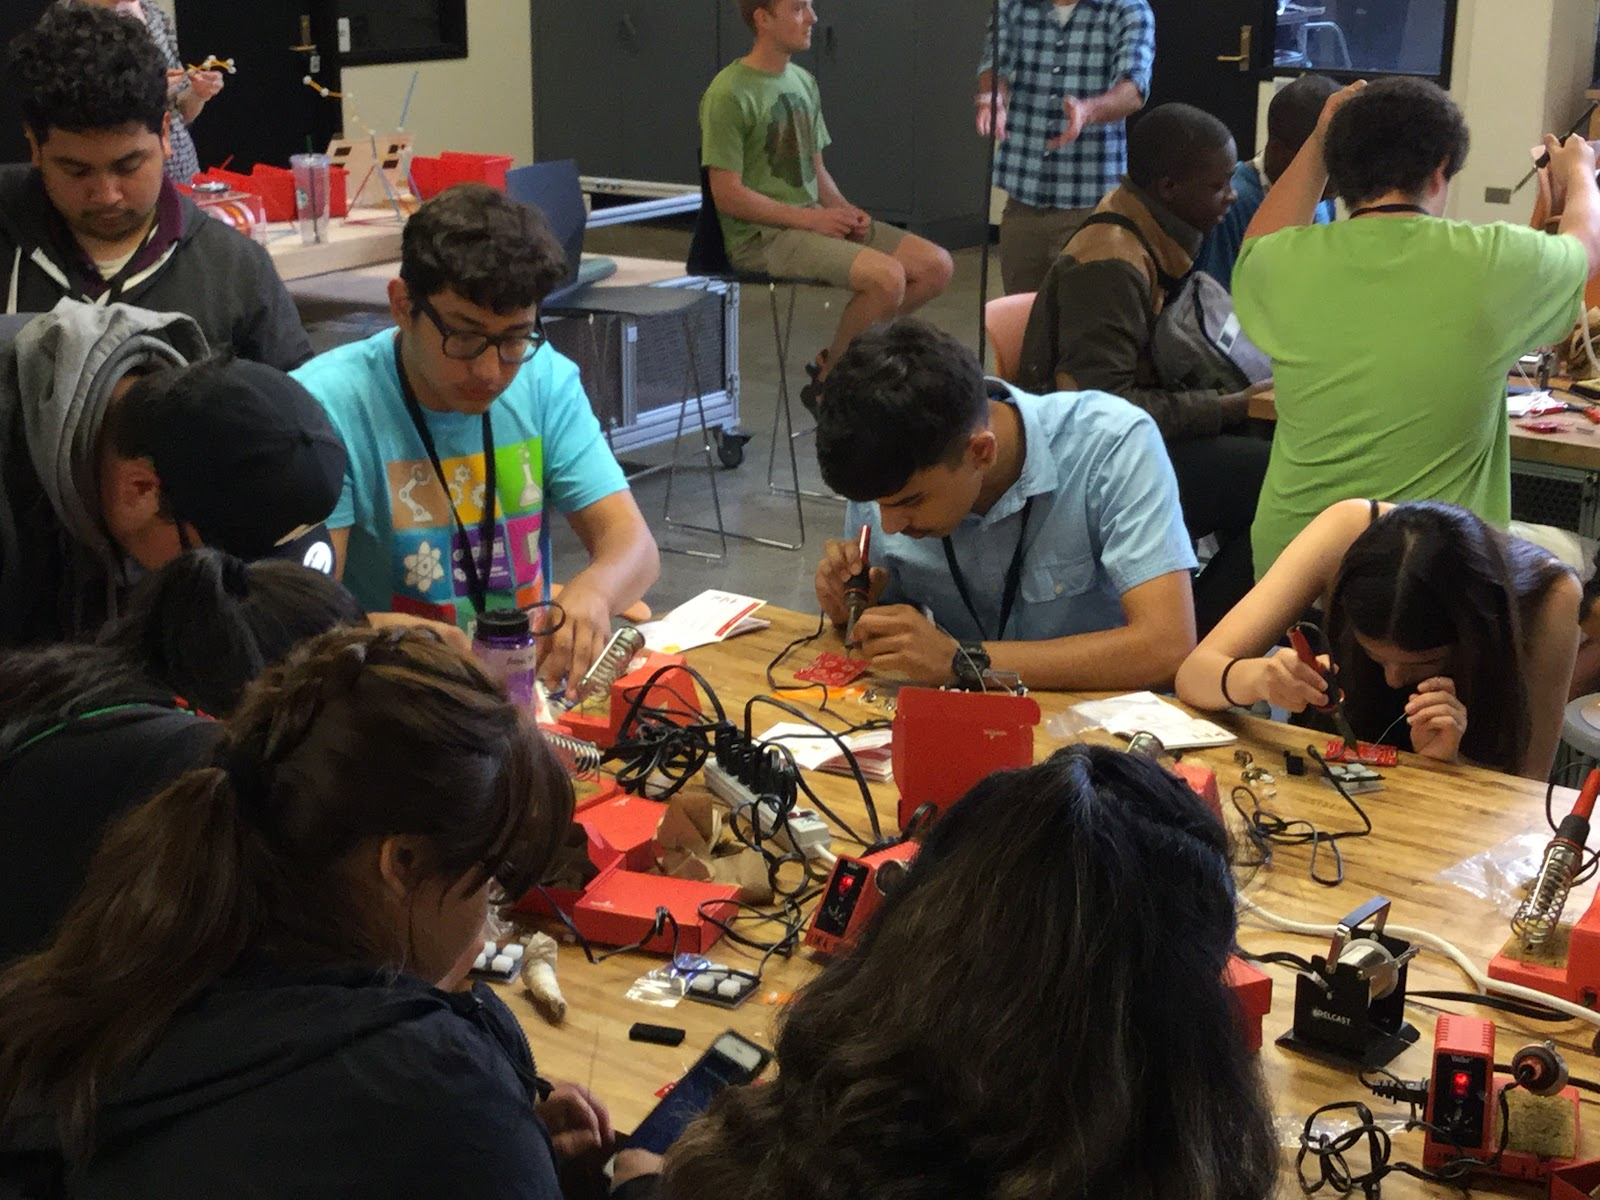 EngiNearMe students solder circuit boards during the bridge program